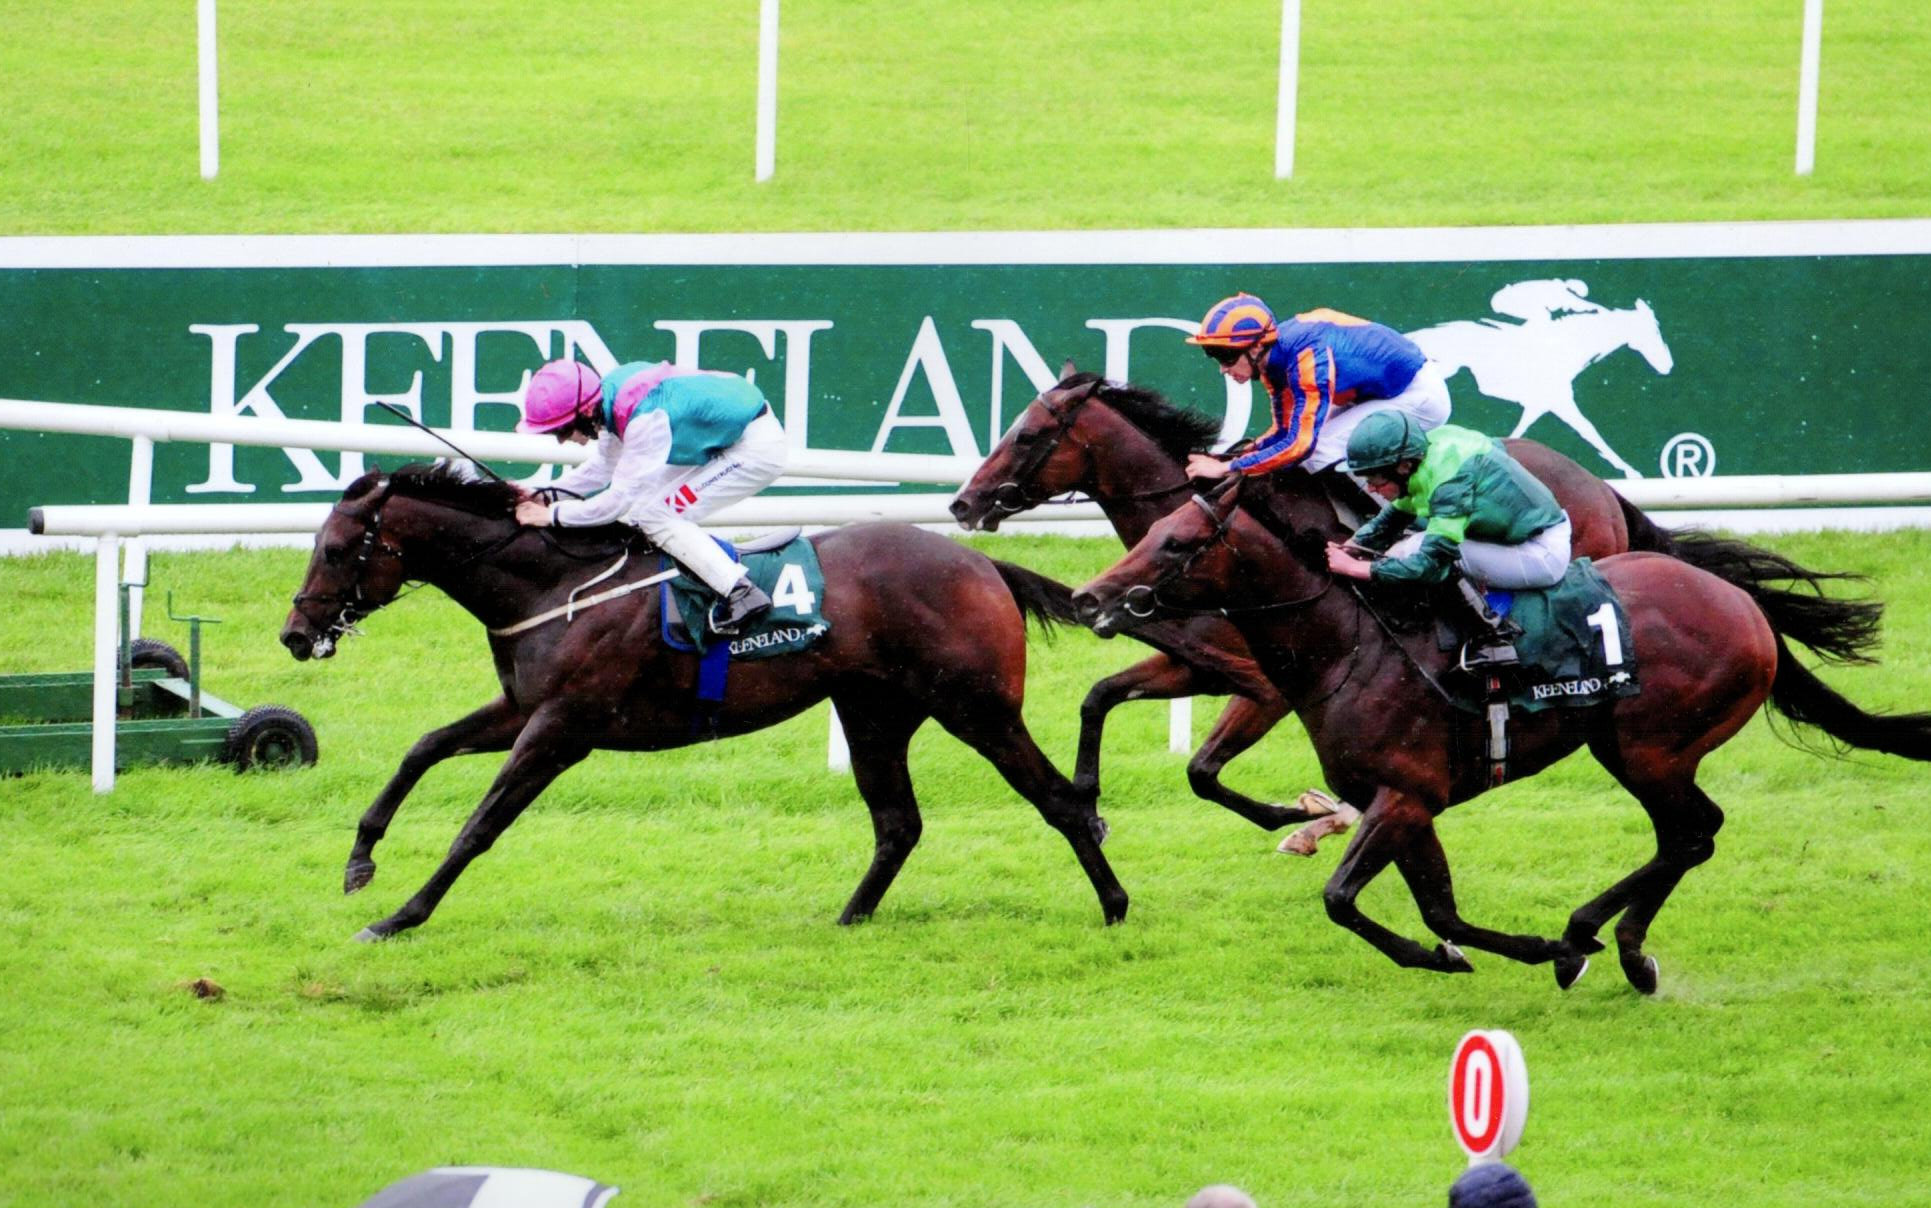 SISKIN lands the Phoenix Keeneland Stks Group 1 - Curragh, 9th Aug 2019